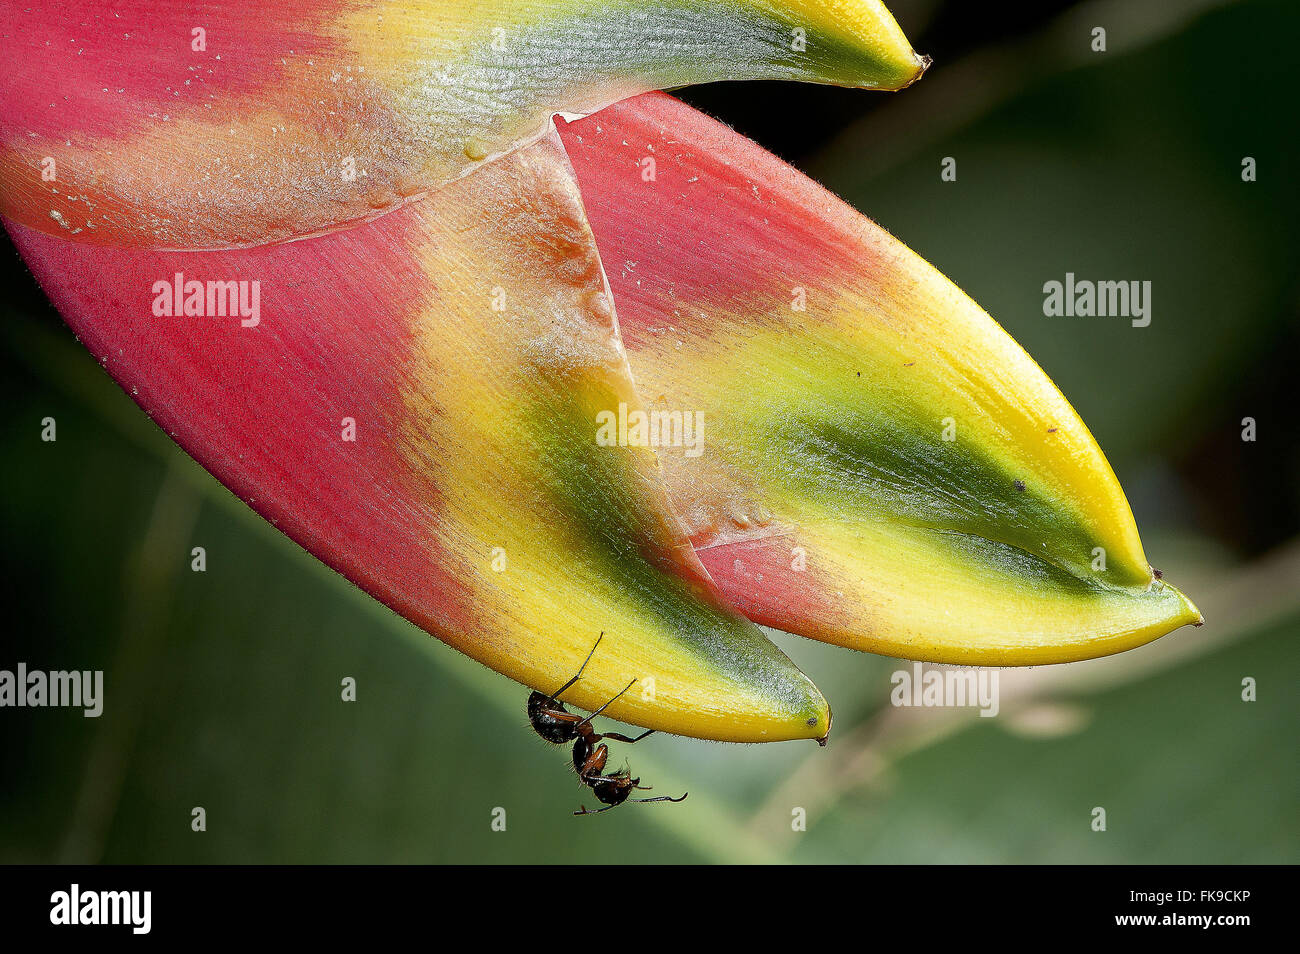 Ants visiting flower of heliconia - Stock Image